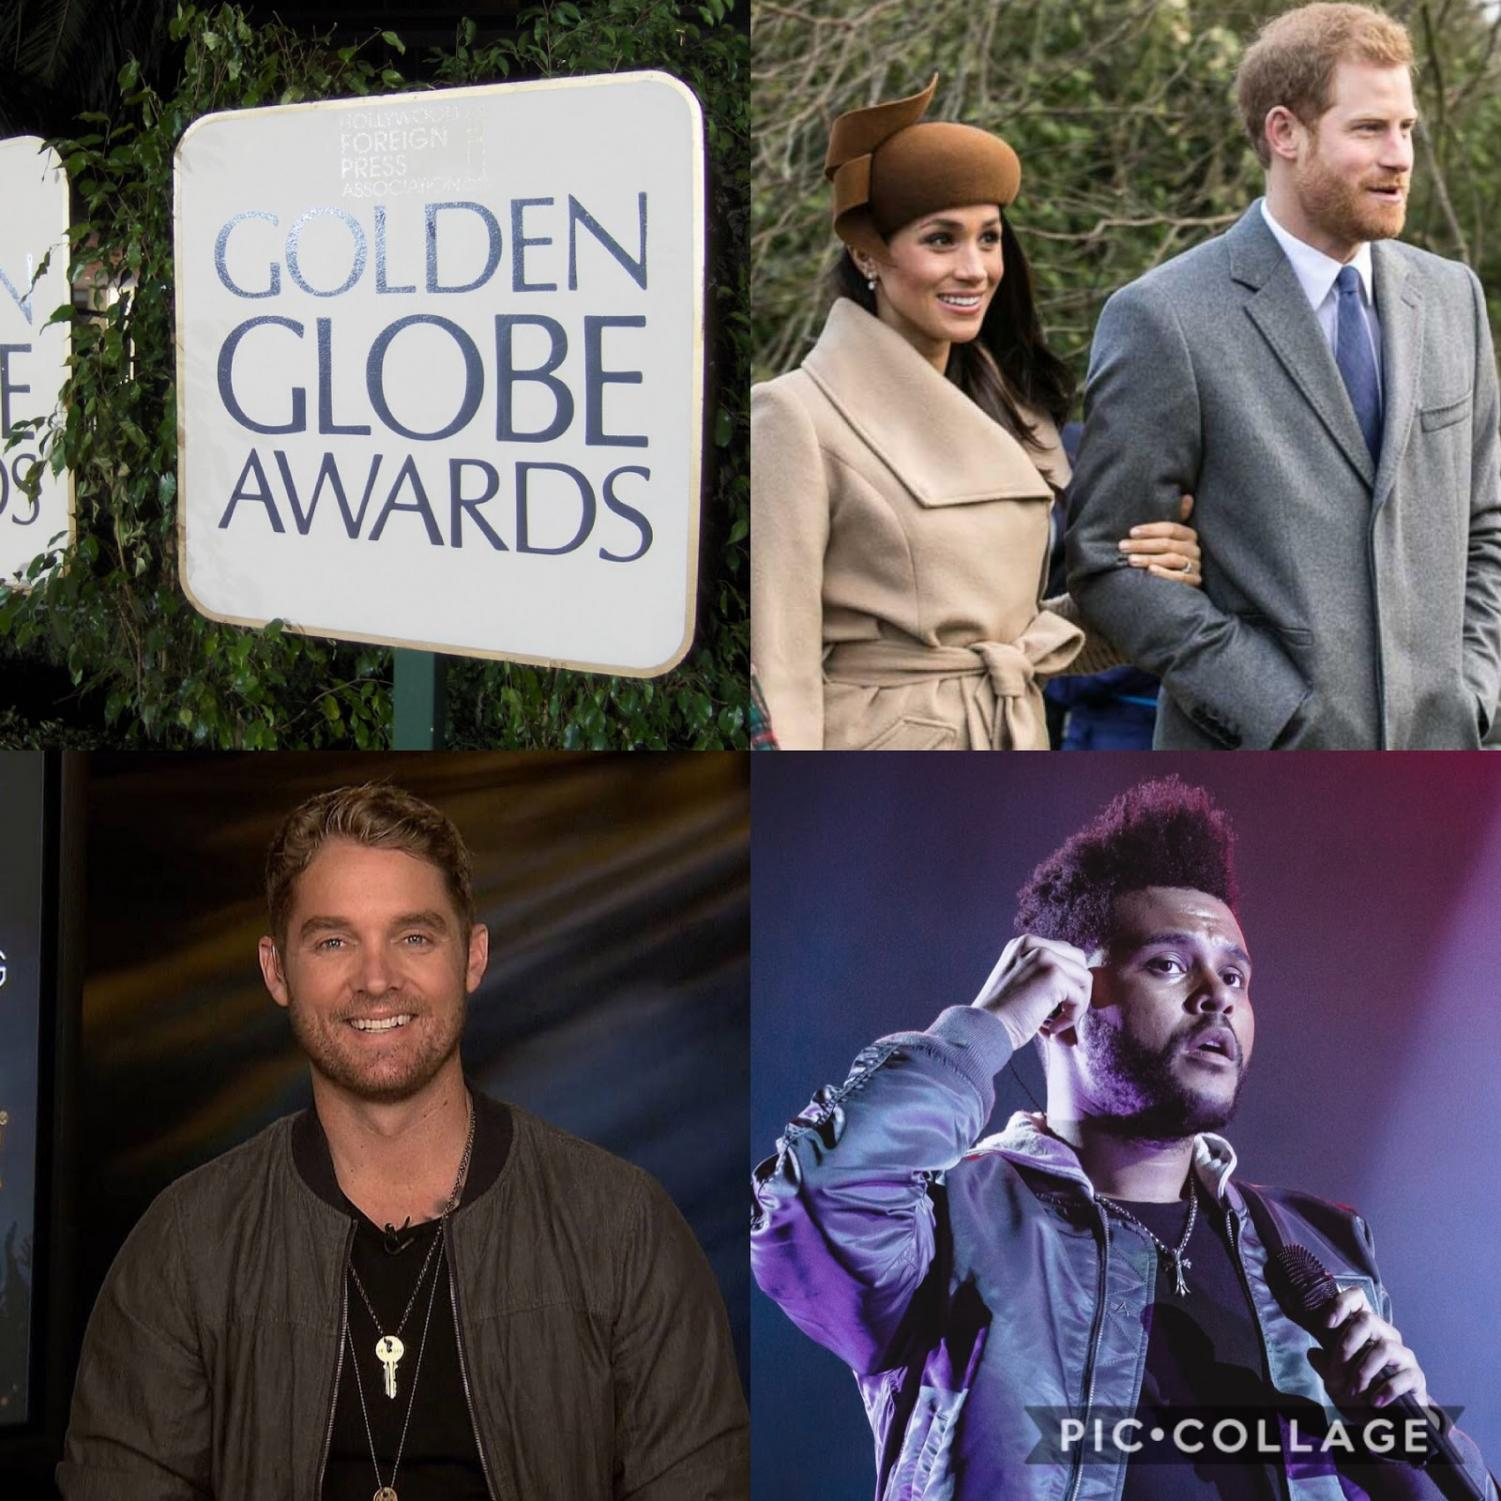 Breaking the latest entertainment news headlines, these stars are causing fans to erupt in excitement. The end months of 2018 and the beginning ones of 2019 is full of new music as artists like Brett Young and Migos will release new albums.